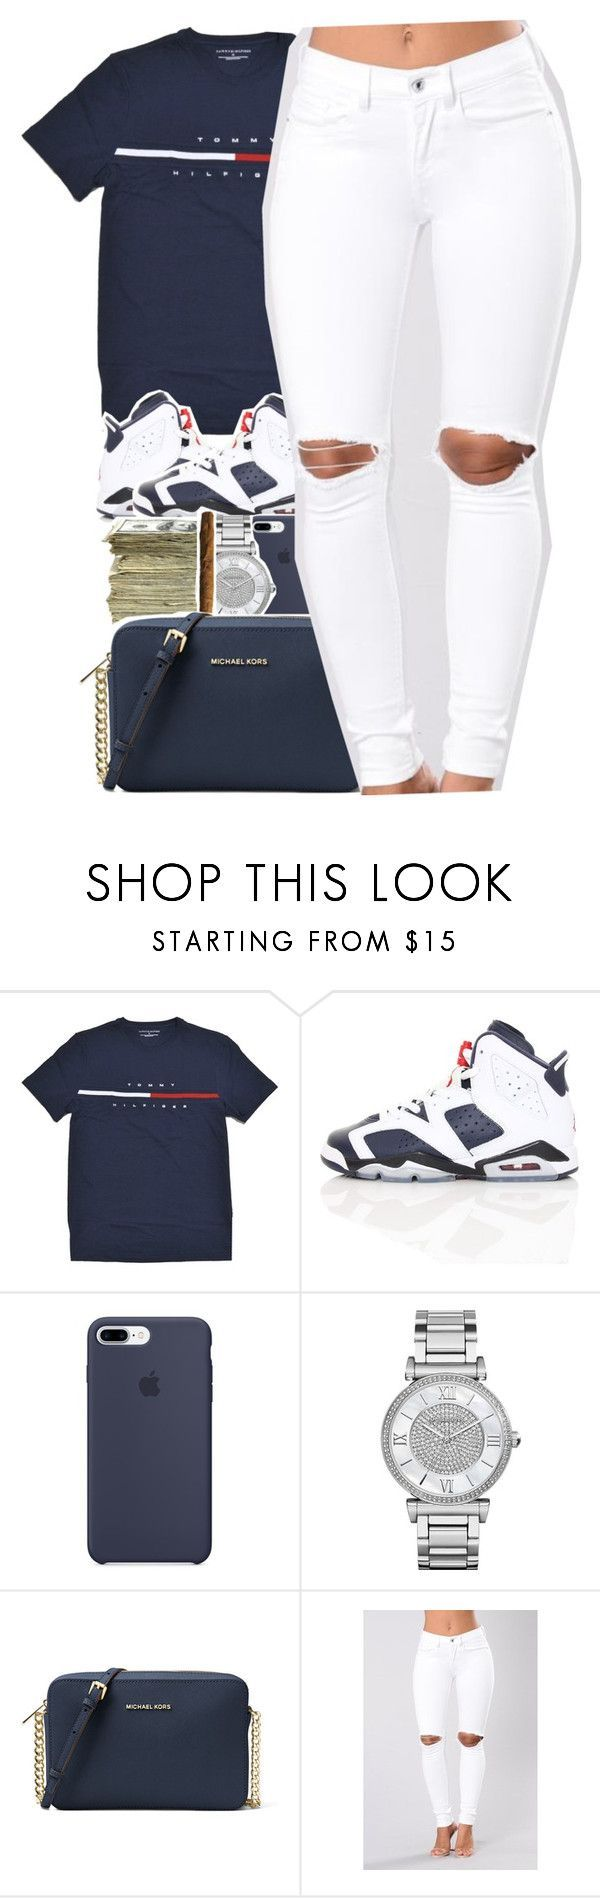 """Hilfiger"" by uniquee-beauty ❤ liked on Polyvore featuring NIKE, SEN, Michael Kors and MICHAEL Michael Kors"